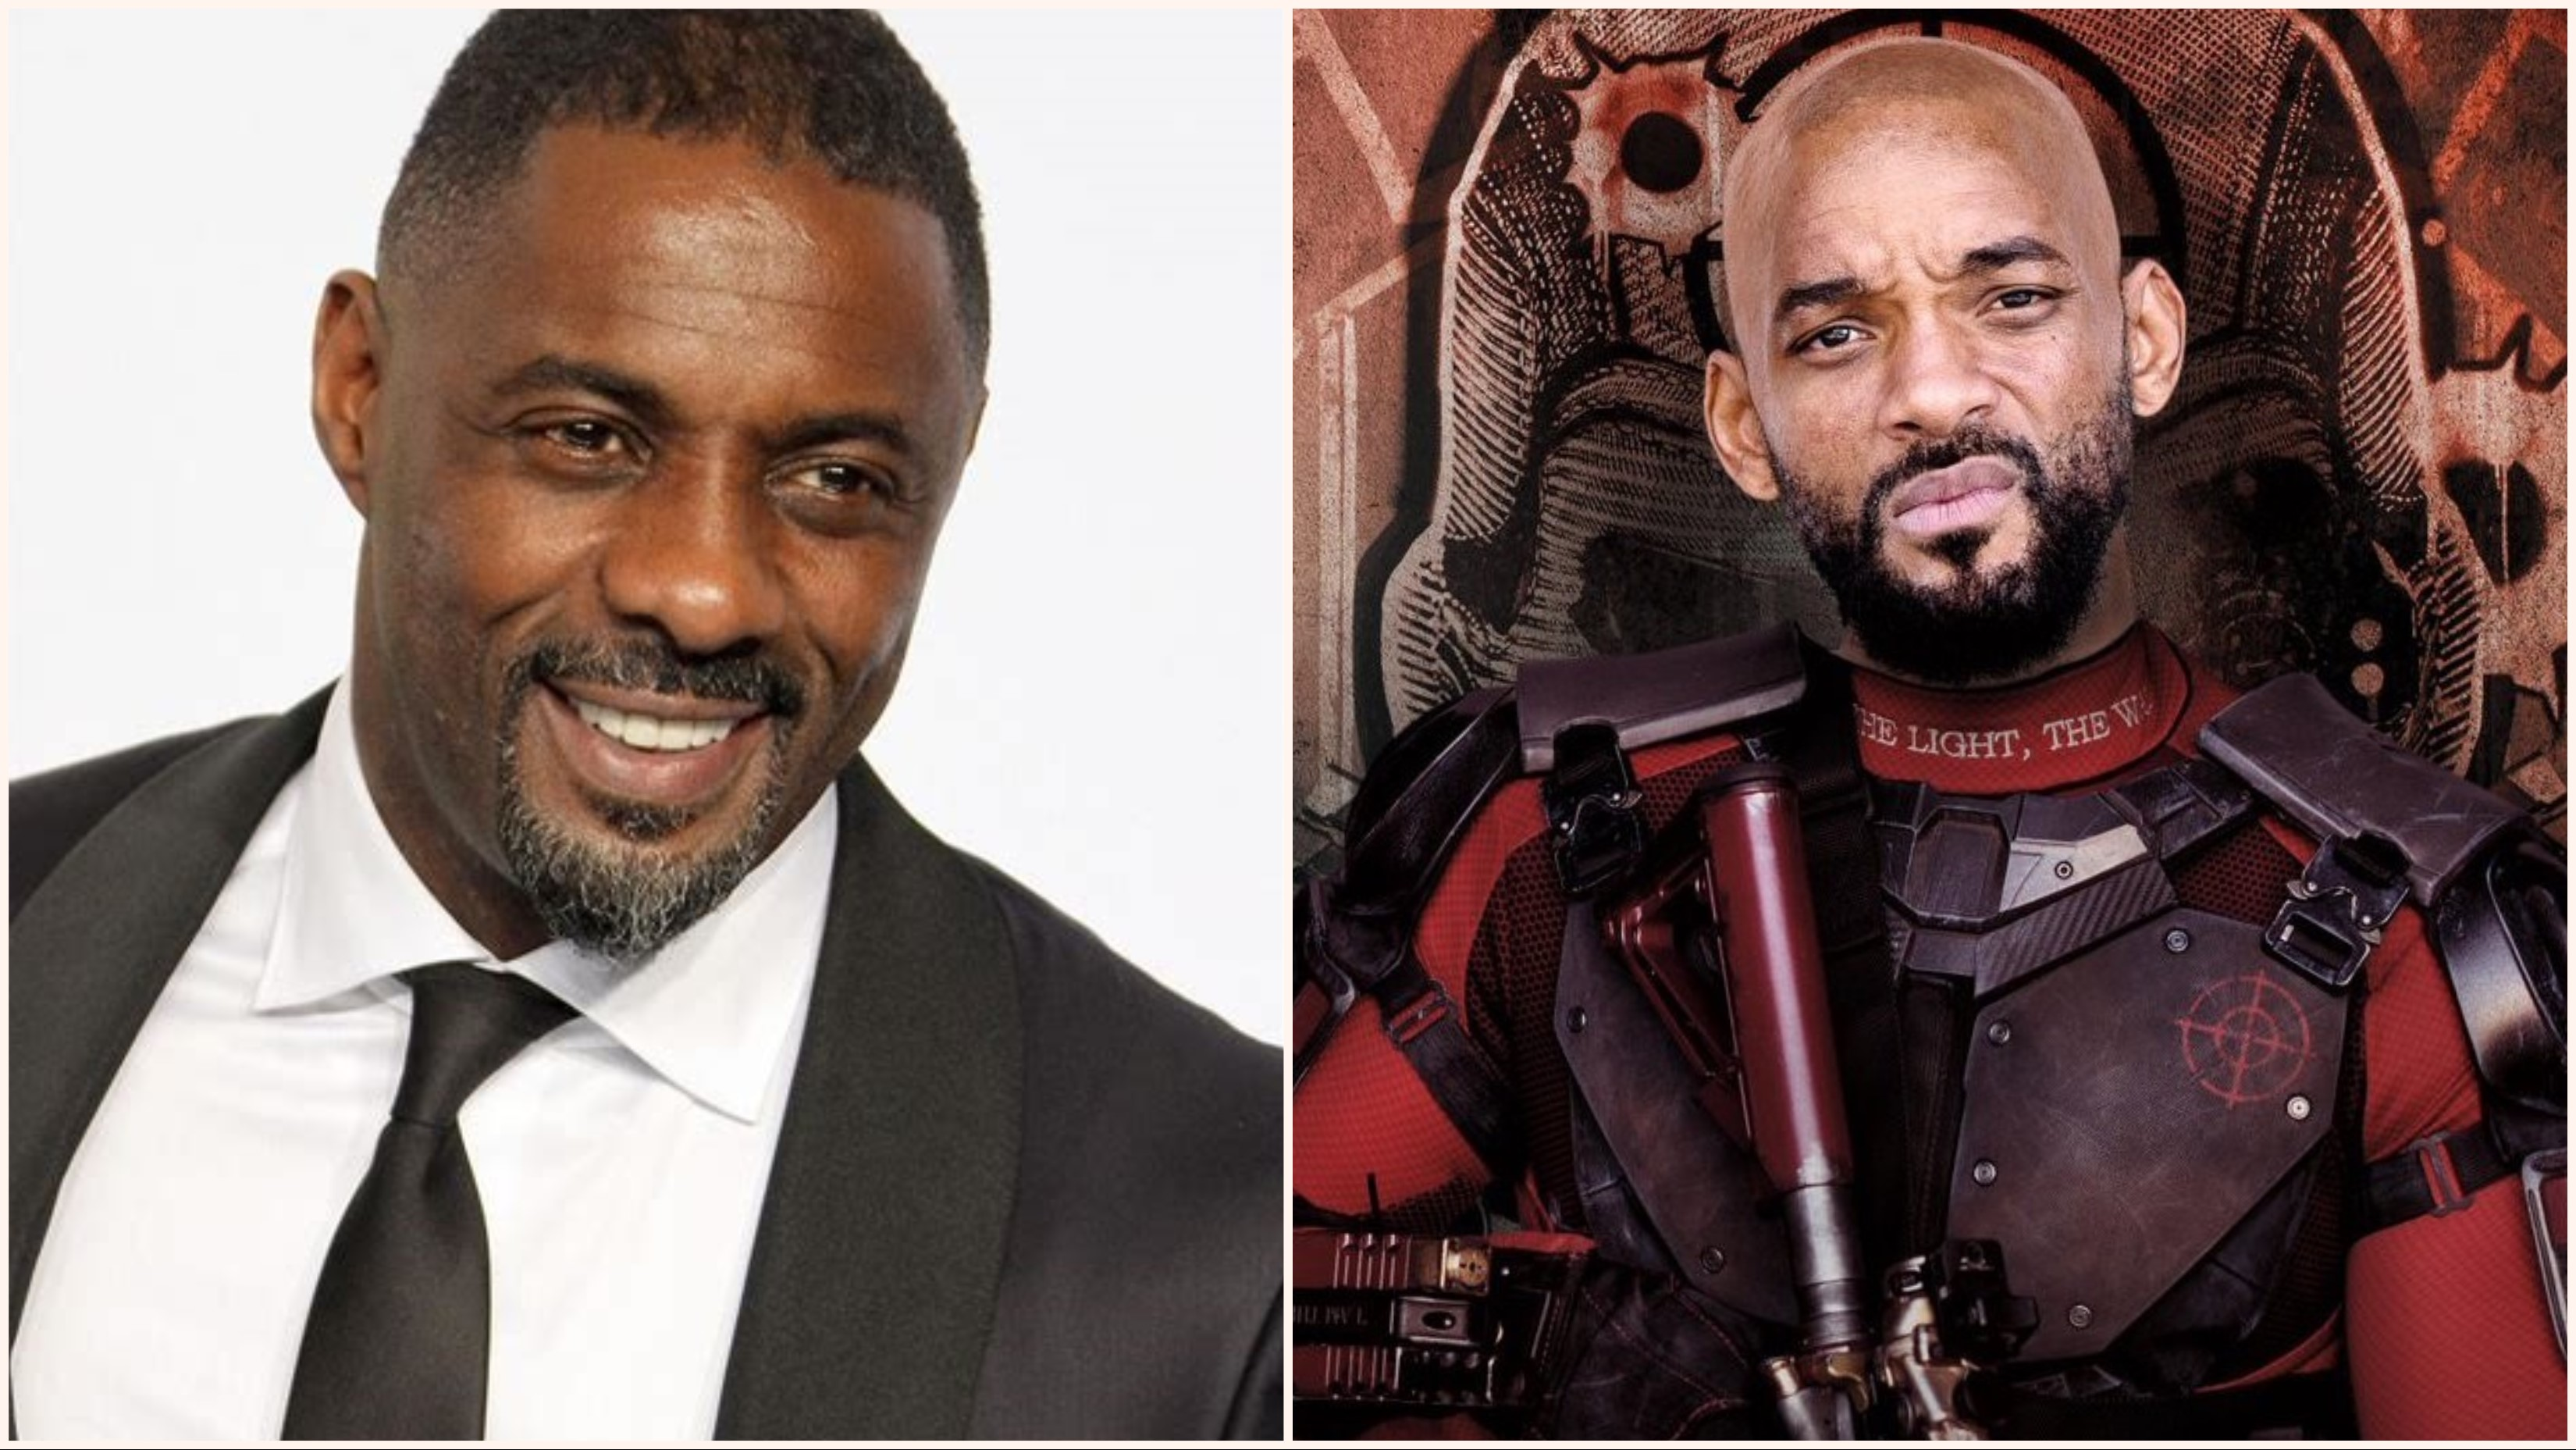 https://images.jeugeek.com/uploads/images-content/Idris-Elba-To-Replace-Will-Smith-In-The-Suicide-Squad